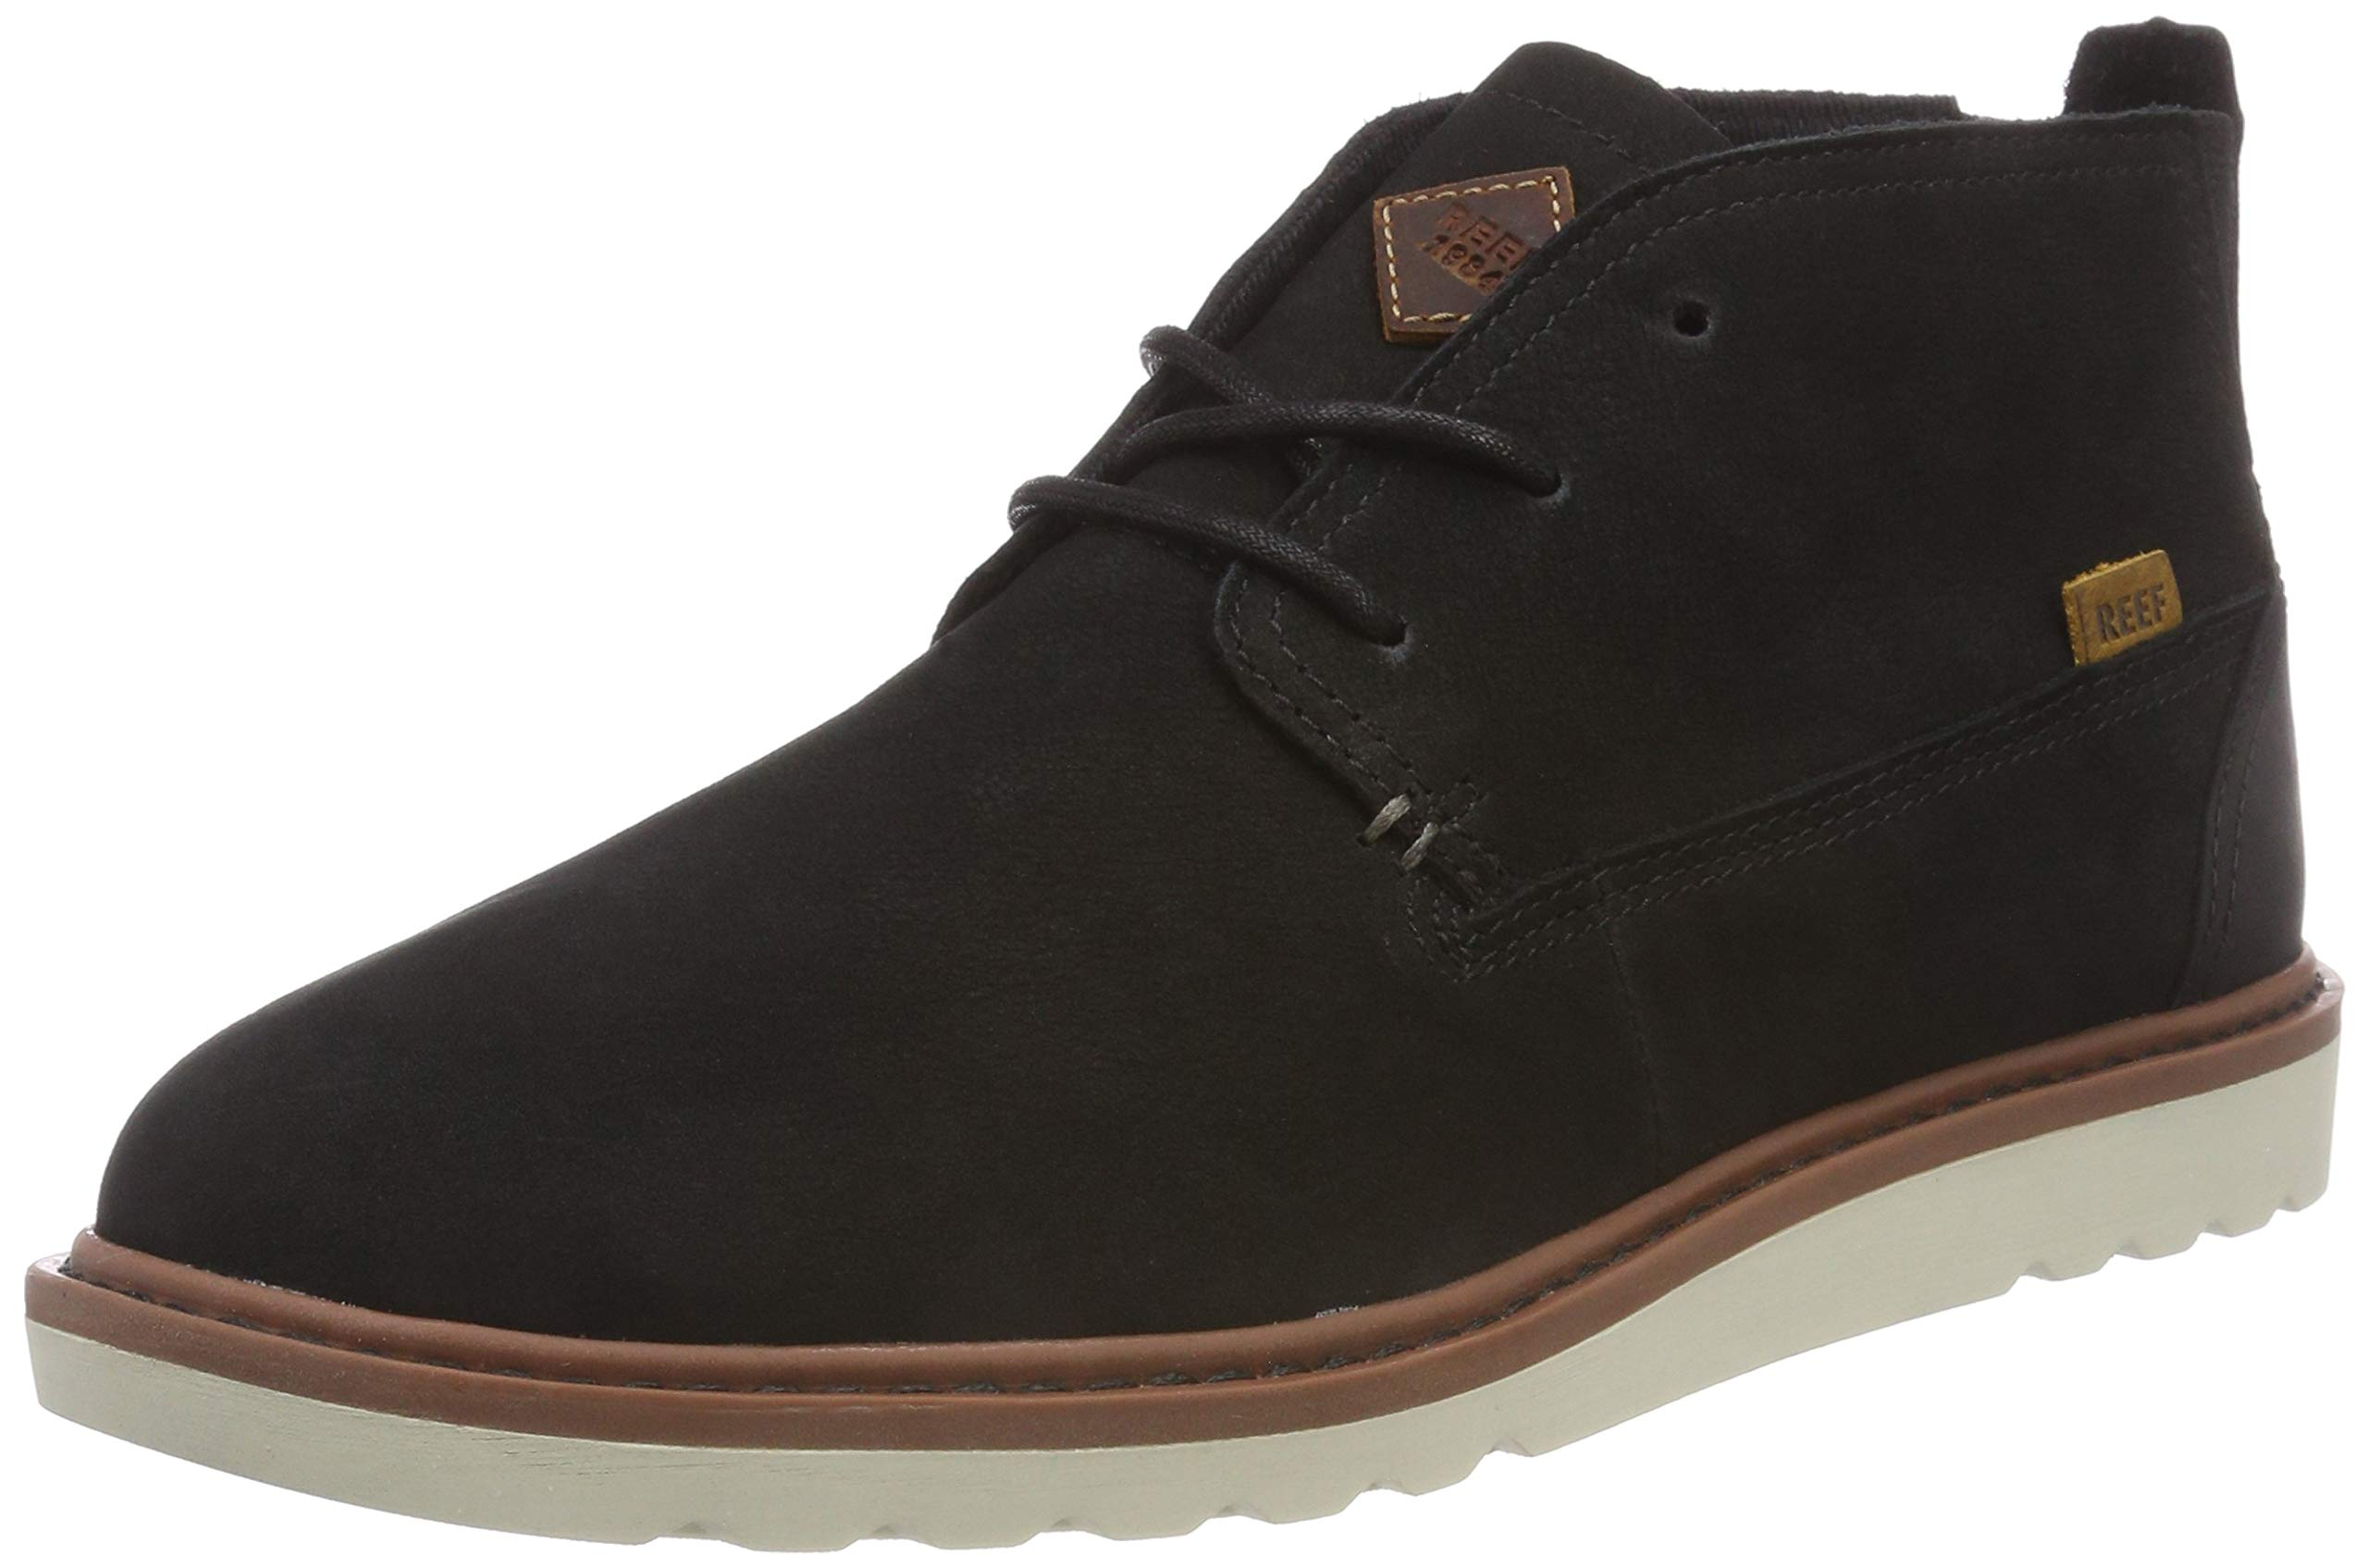 Reef Men's Voyage Boot Shoes, Black/Natural